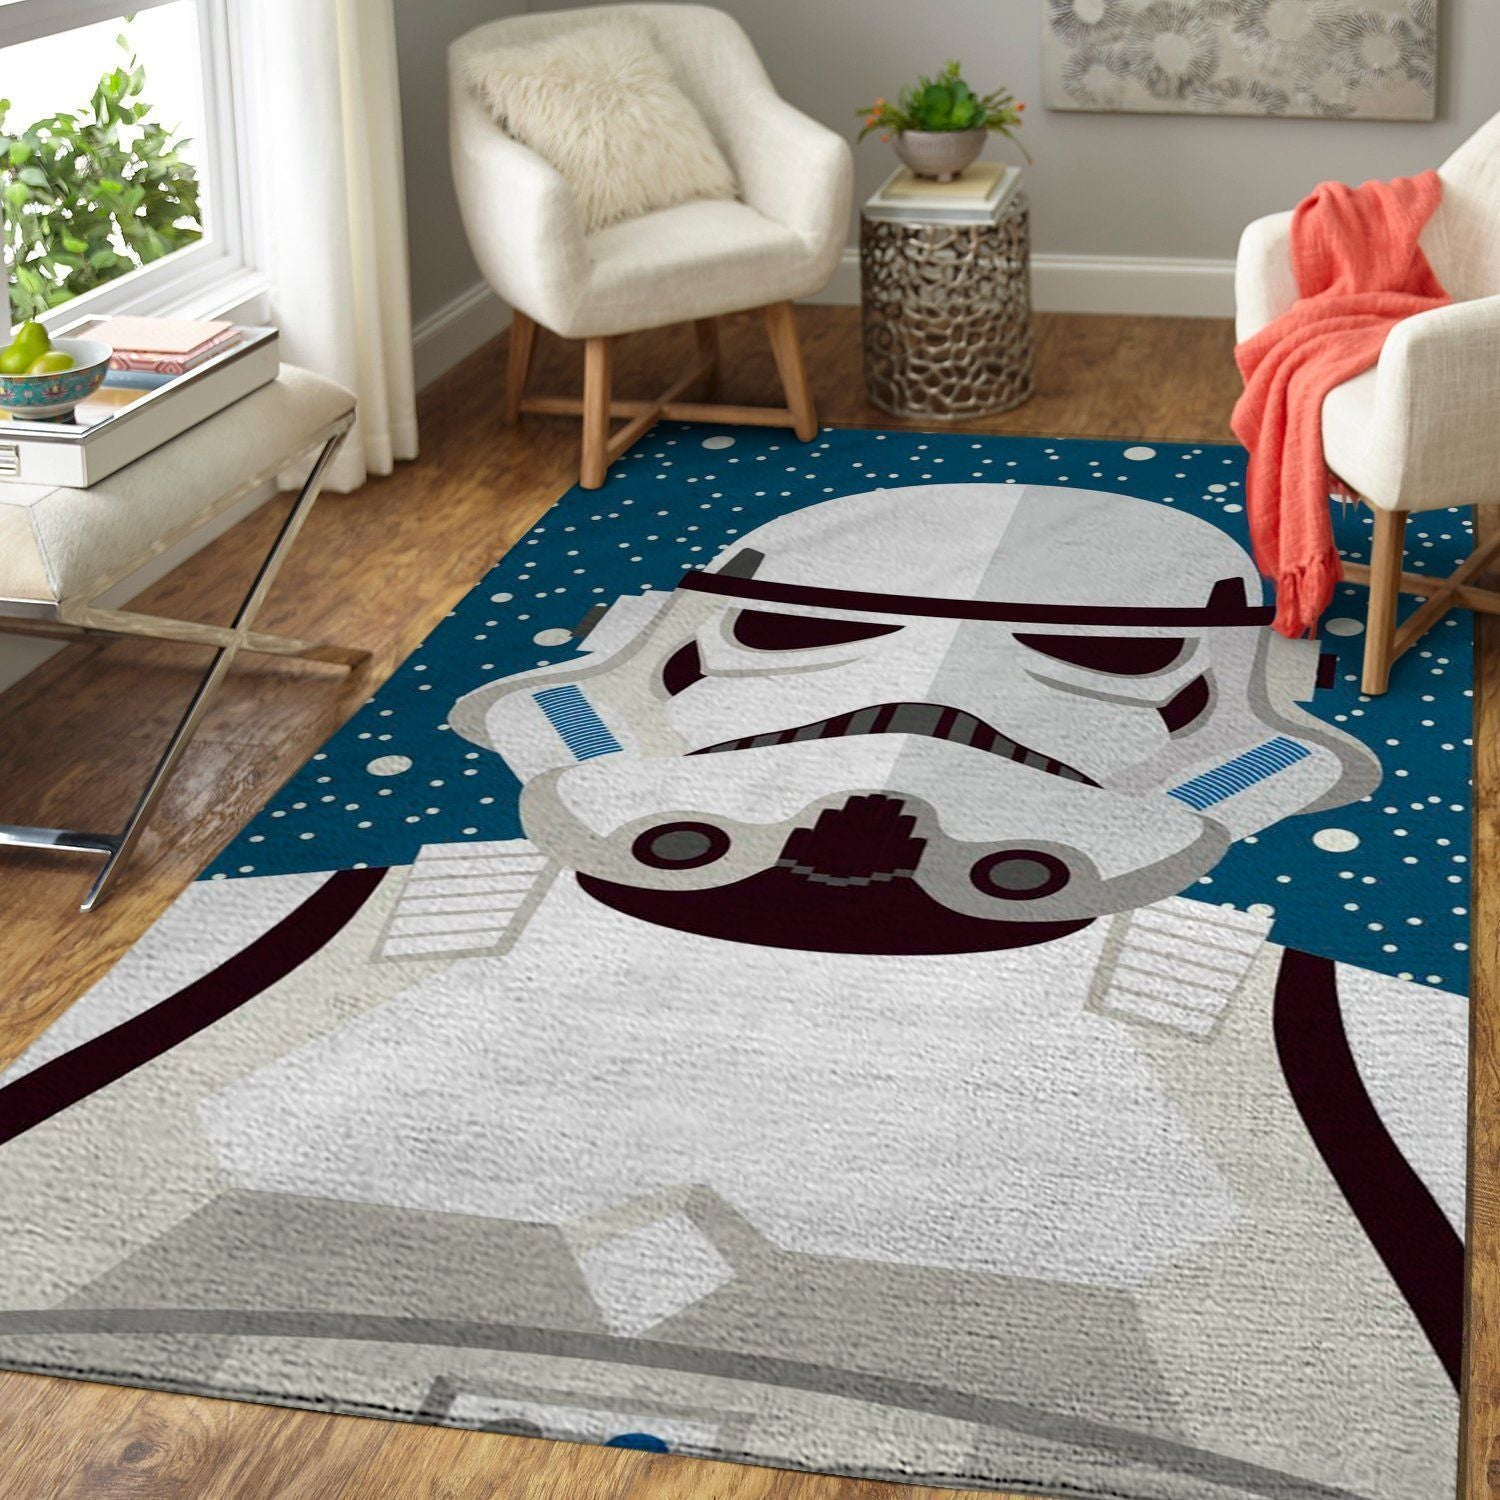 Stormtrooper Area Rugs, Star Wars Movie Living Room Carpet, Custom Floor Decor 6